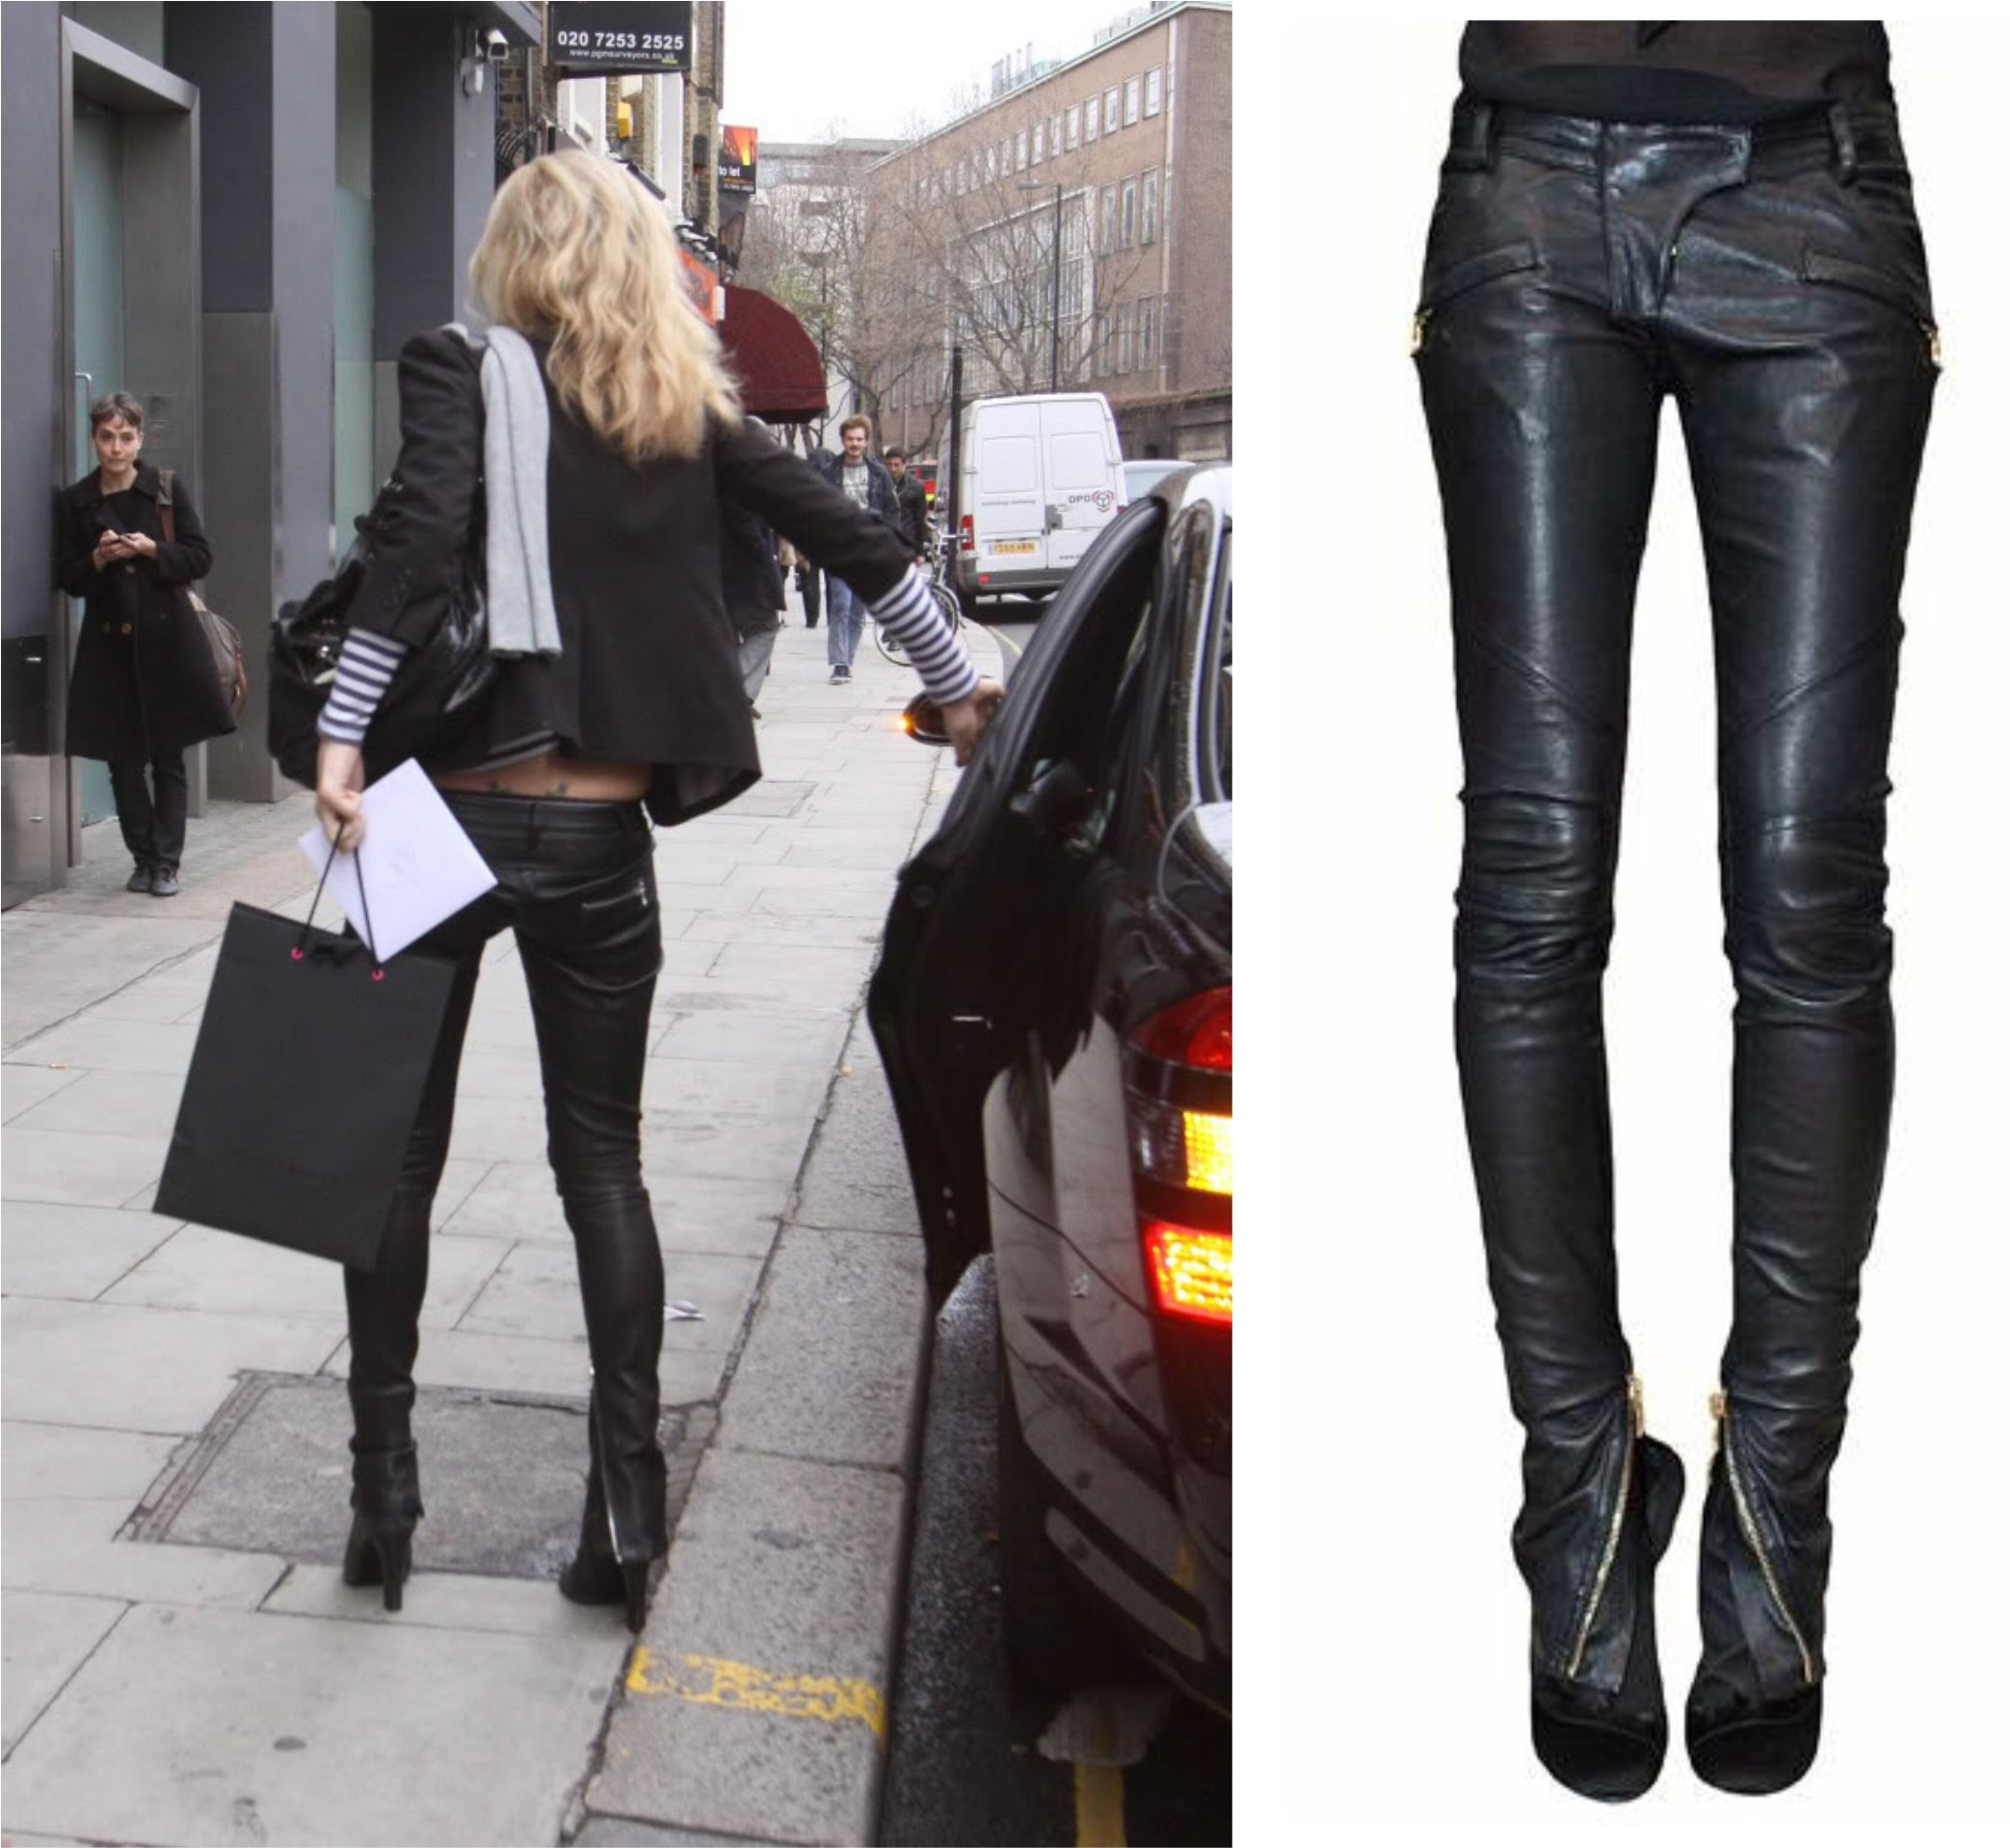 Unique At Balmain, Rihanna Causes  Or At Least Urban AmazoniansCargo Pants Become Essential Trousers, Jackets Worn Short And Puffedout, Parkas Worked With Sliding Zips Tops Possess Super Elaborate Laps Leather Is Everywhere, A